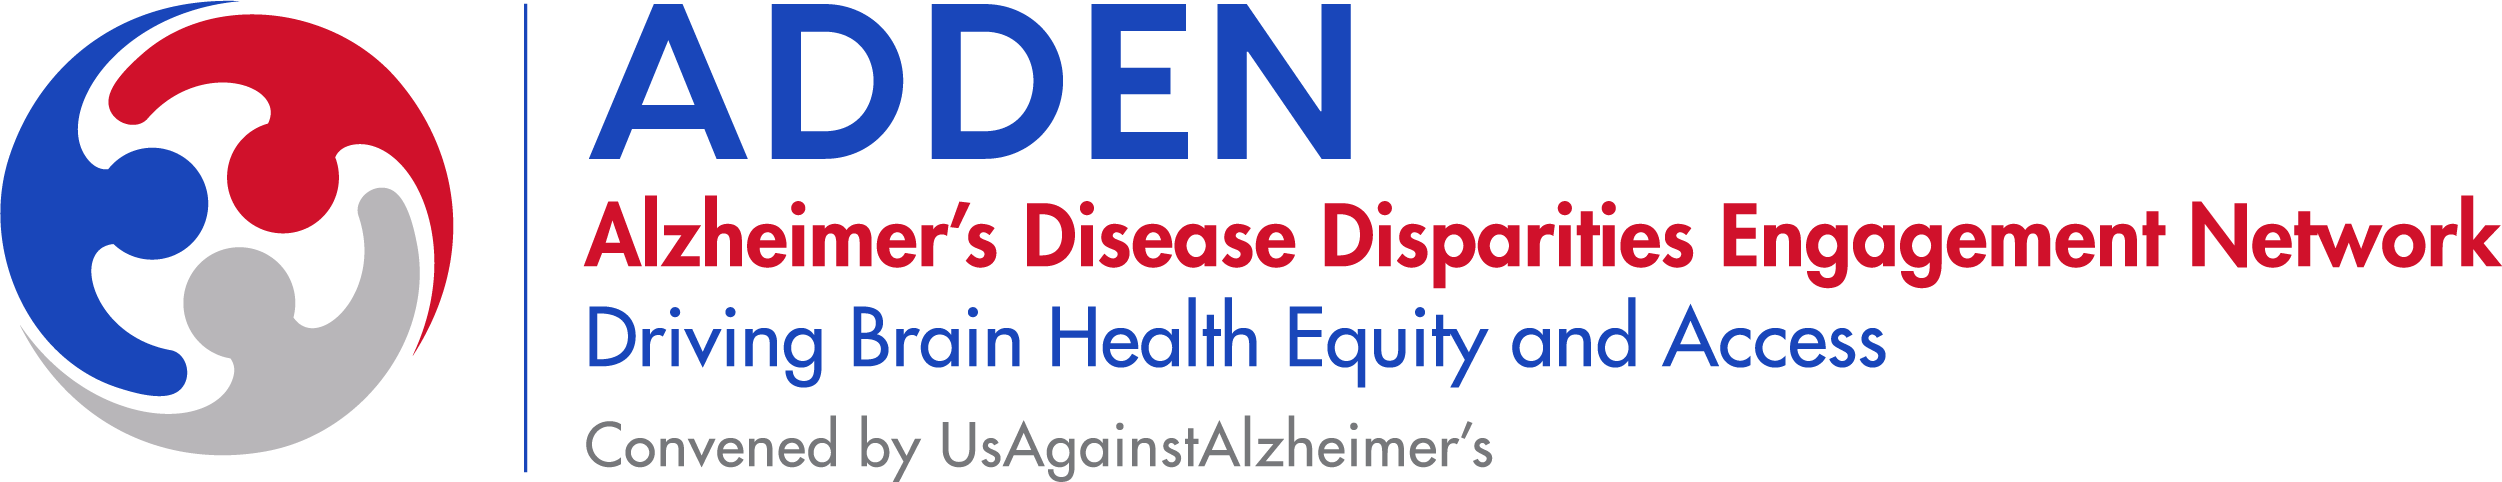 Alzheimer's & Dementia Disparities Engagement Network